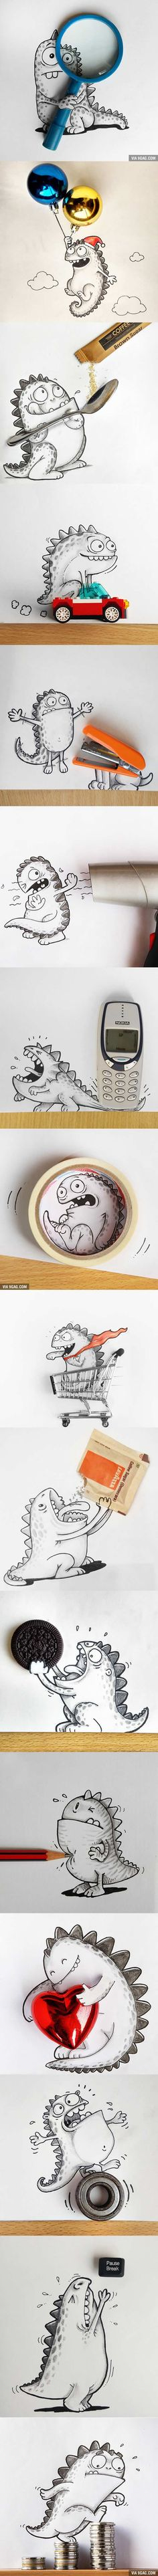 Cute dragon drawing playing with everyday things